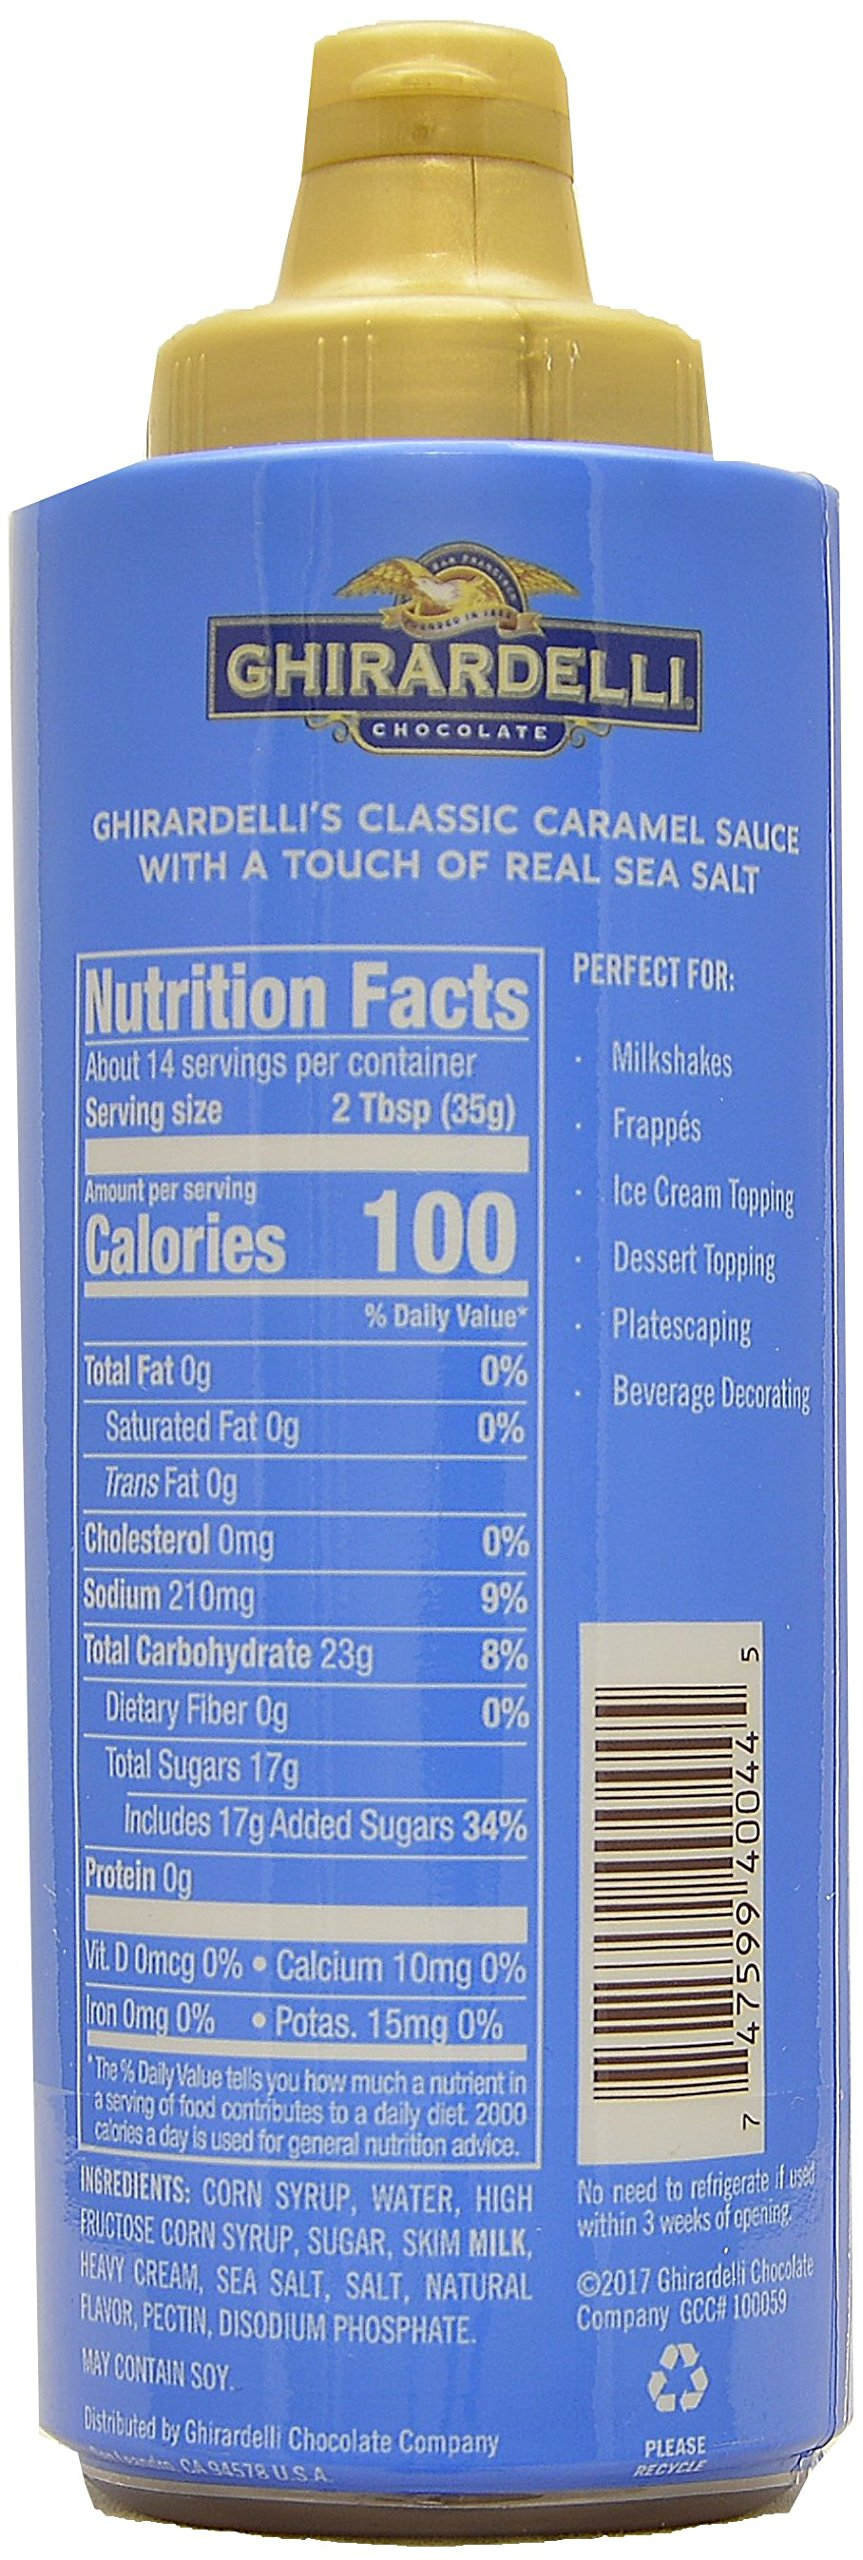 Ghirardelli - 16 Ounce Black Label, 16 Ounce Vanilla, 17 Ounce Caramel, 17 Ounce Sea Salt Caramel Flavored Sauce (Set of 4) - with Limited Edition Measuring Spoon by Ghirardelli (Image #3)